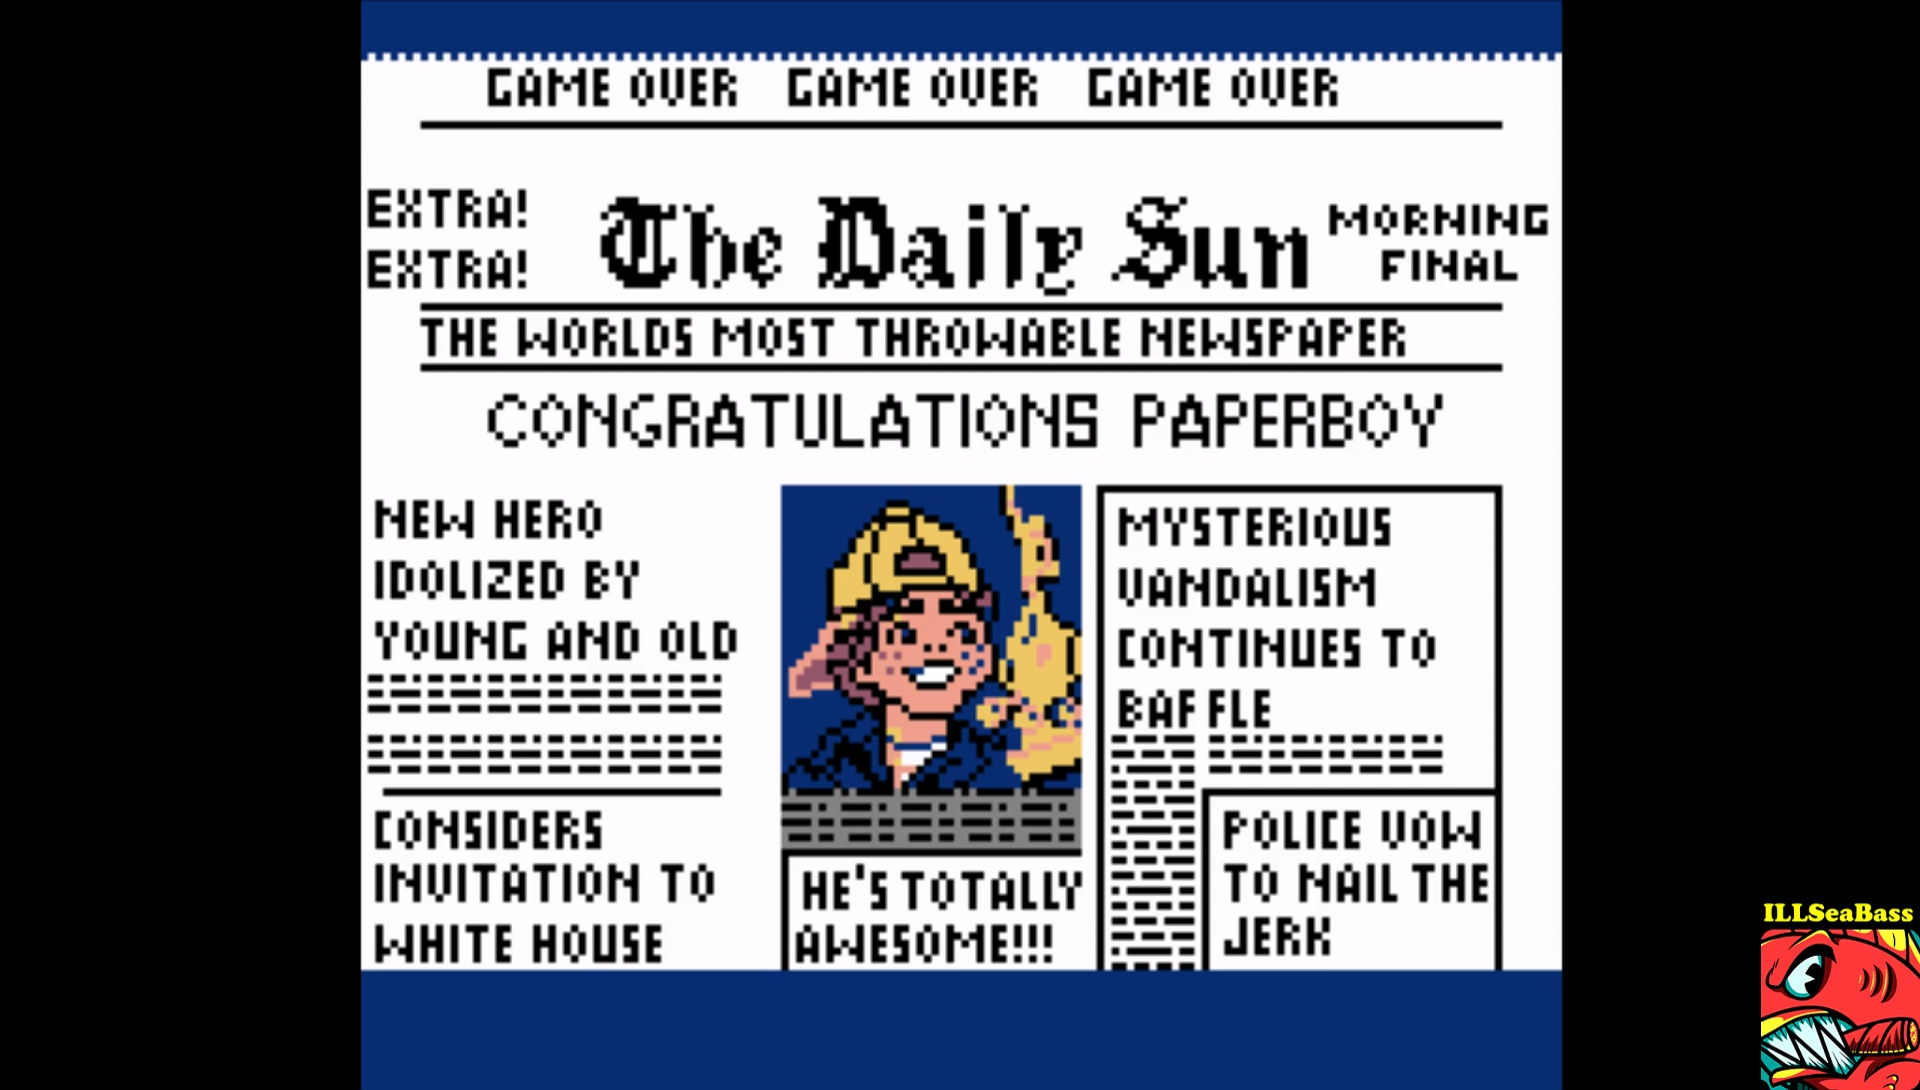 ILLSeaBass: Paperboy [Easy Street] (Game Boy Color Emulated) 65,675 points on 2017-04-24 16:44:43